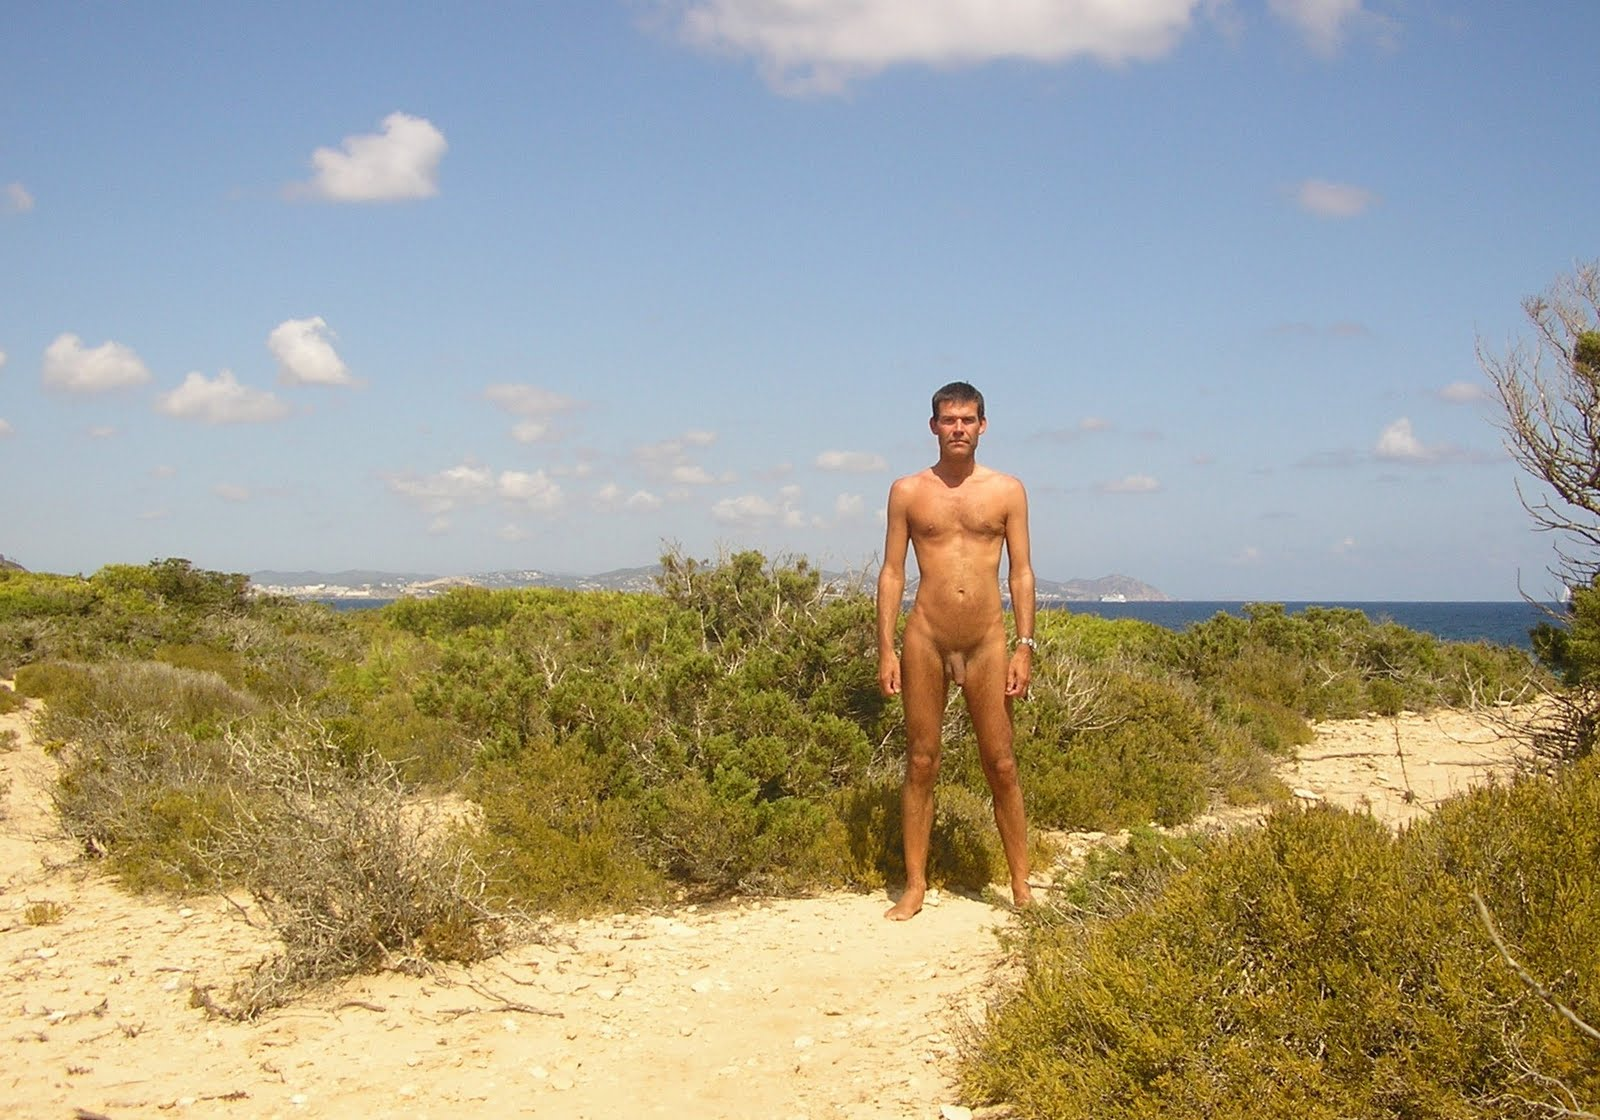 Playa del ingles naked